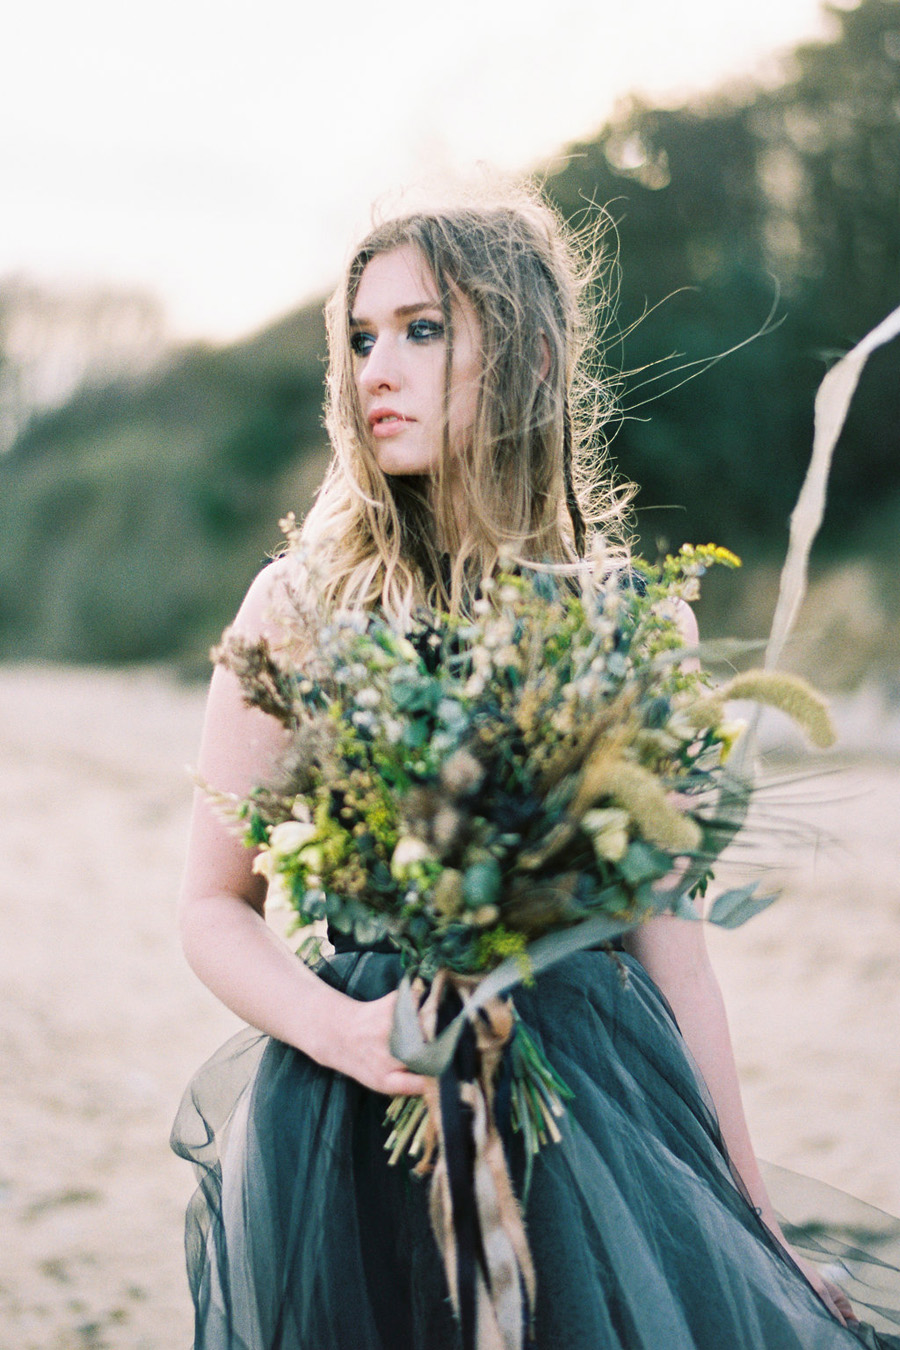 Coastal wedding style ideas from fine art photographer Kathryn Hopkins (9)